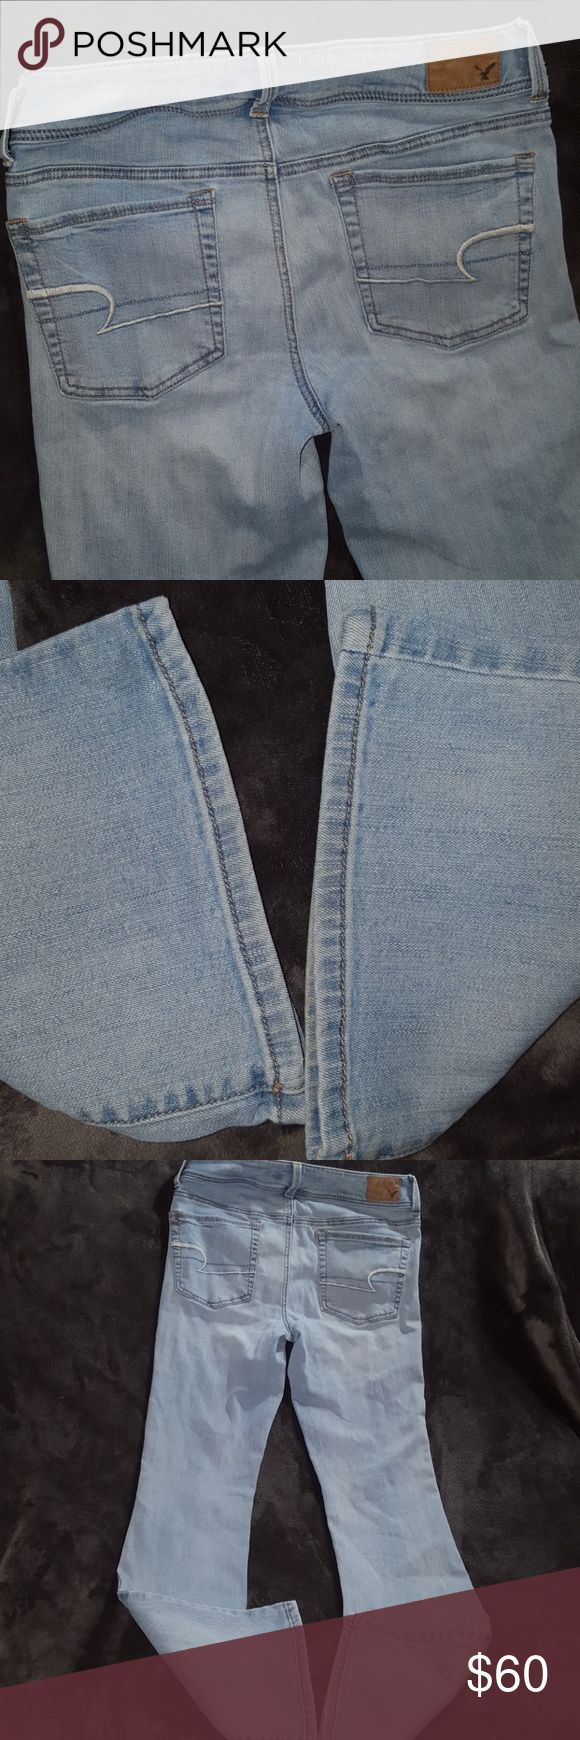 ⬇️$36 KICK BOOT Stretch Light American Eagle Jean KICK BOOT Super Stretch Light American Eagle Jeans ~ New without Tags ~ Size 8 regular Ladies ~ 71% cotton 14% polyester 14% viscose 1% elastane. Light wash with lighter whiskered in front and legs. I ship daily. Rise: about 8.5 inches Inseam: about 30.5 inches. American Eagle Outfitters Jeans Boot Cut